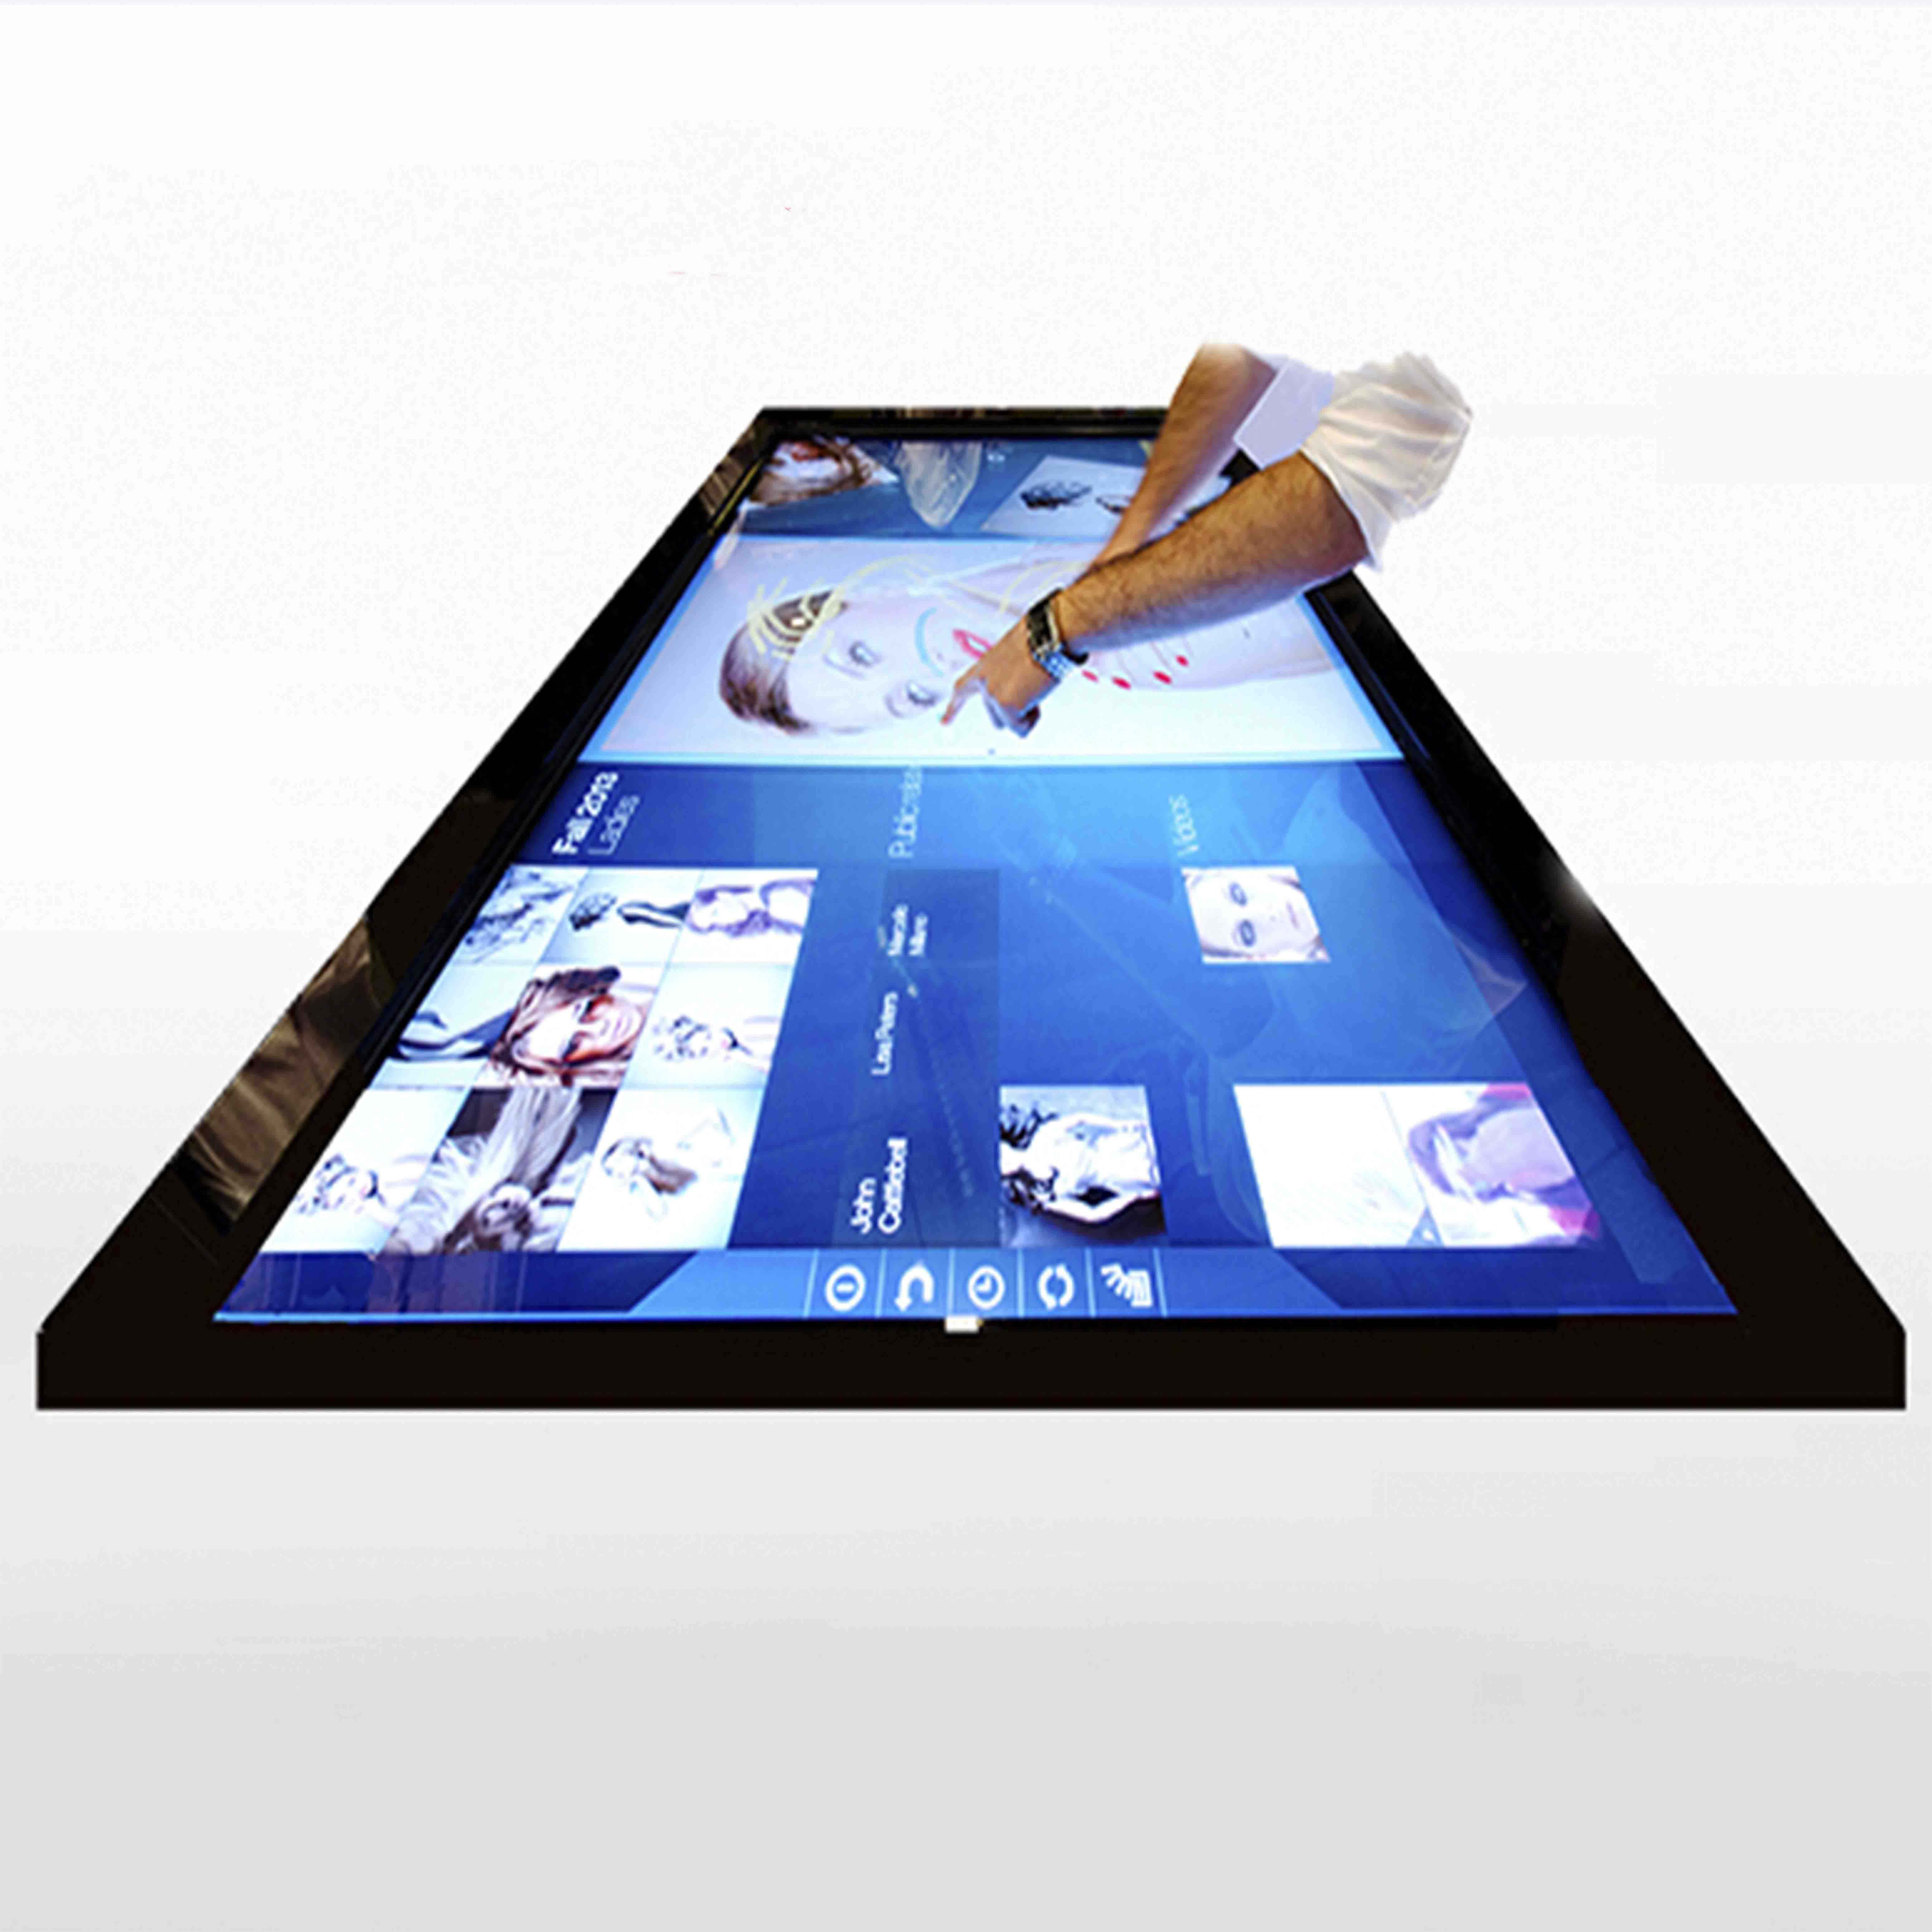 65 inch multi-touch screen infrarood sensor, multi touch screen smart tv, touch frame